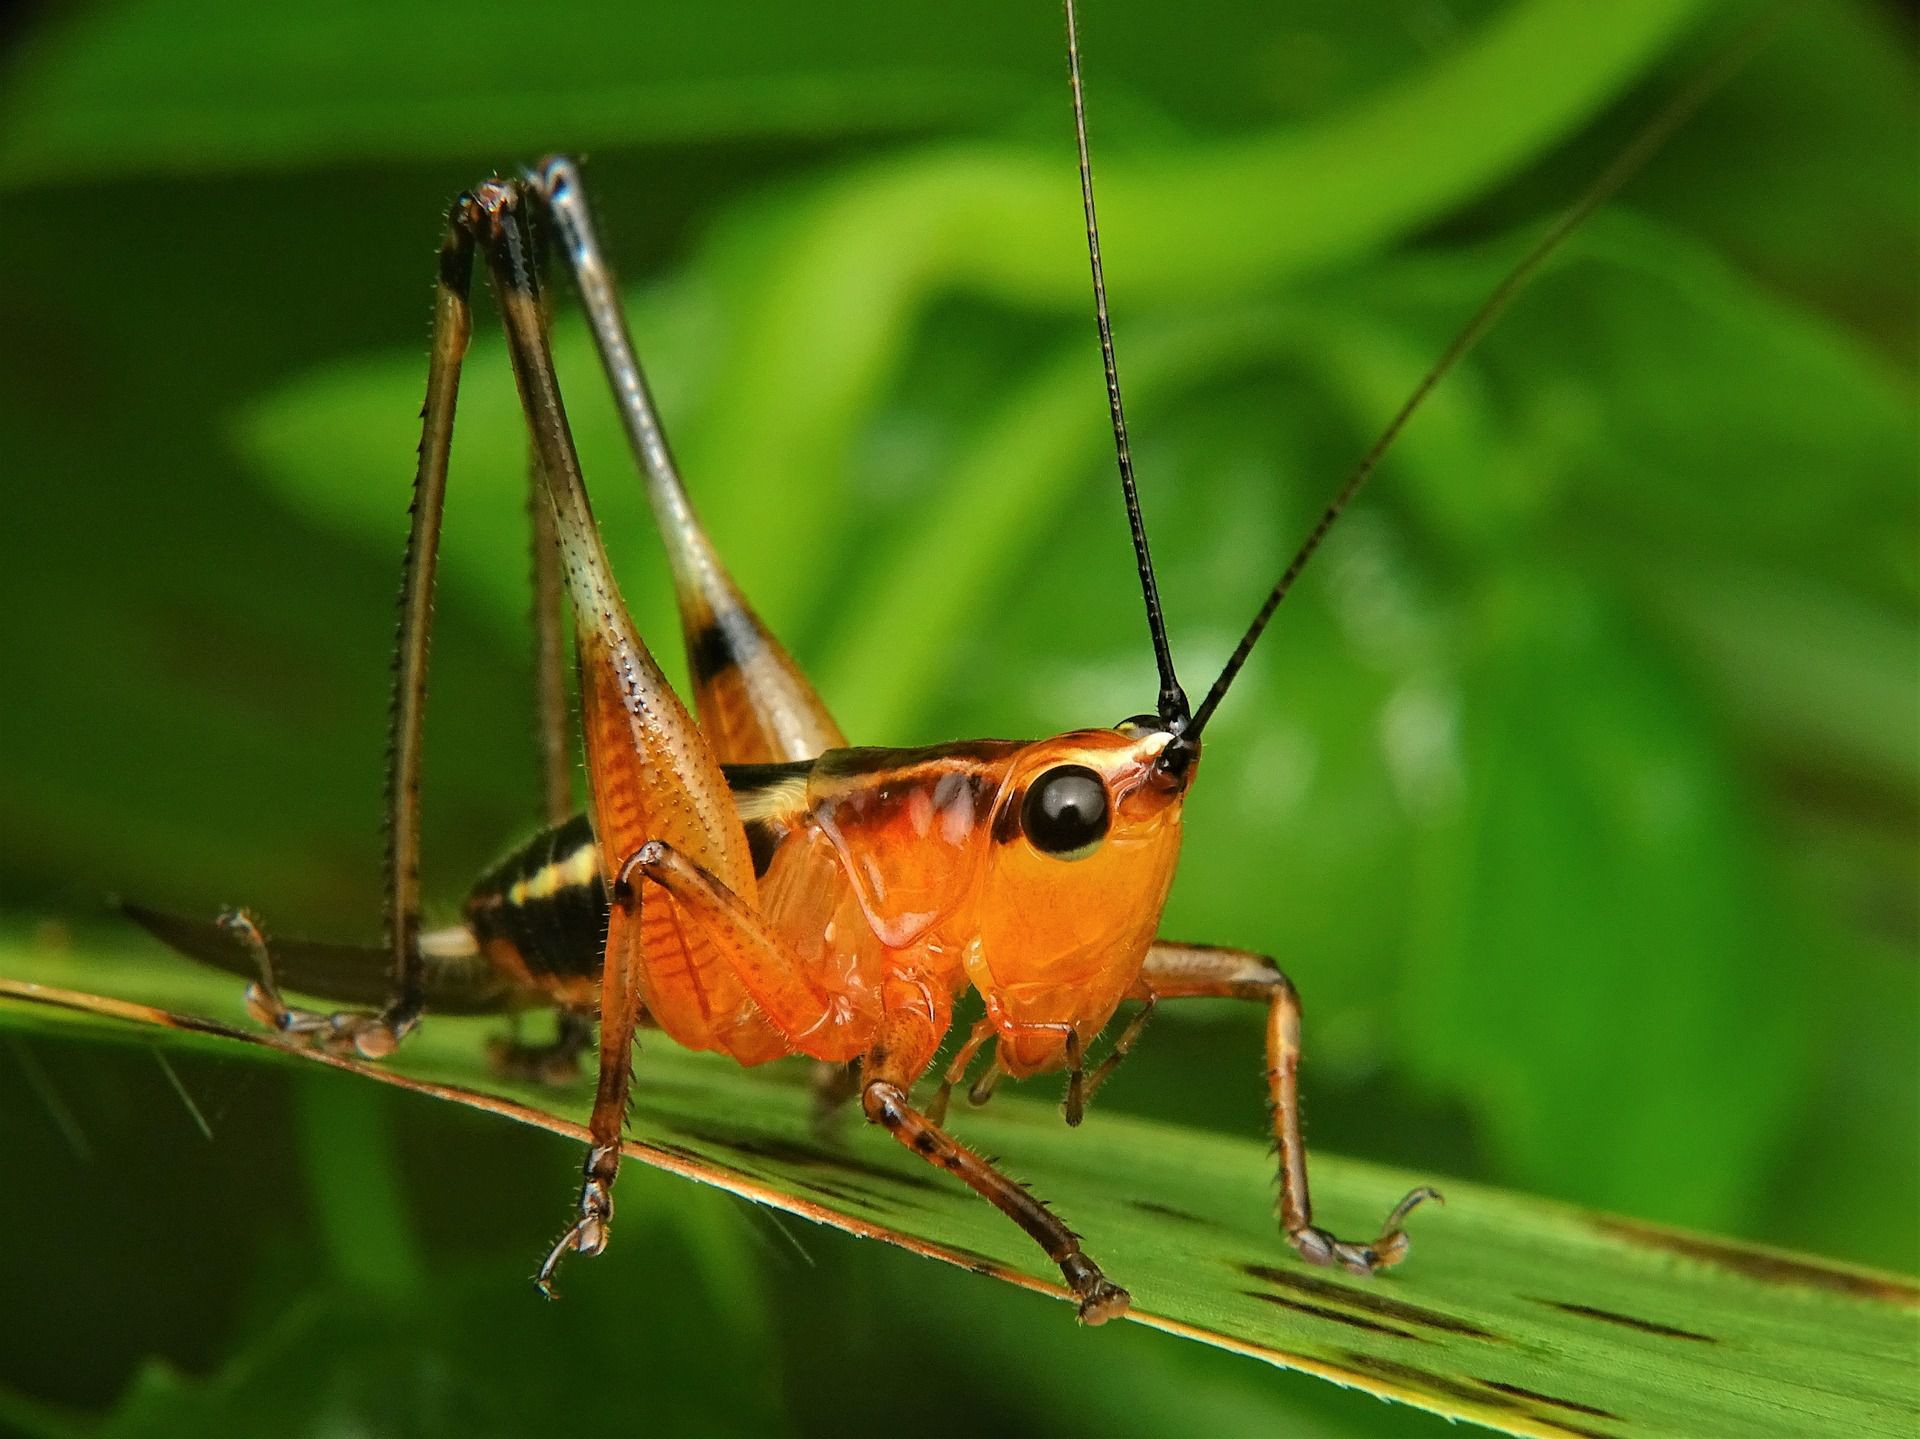 12 Arthropod Pictures Showcase Spiders, Crabs, and More